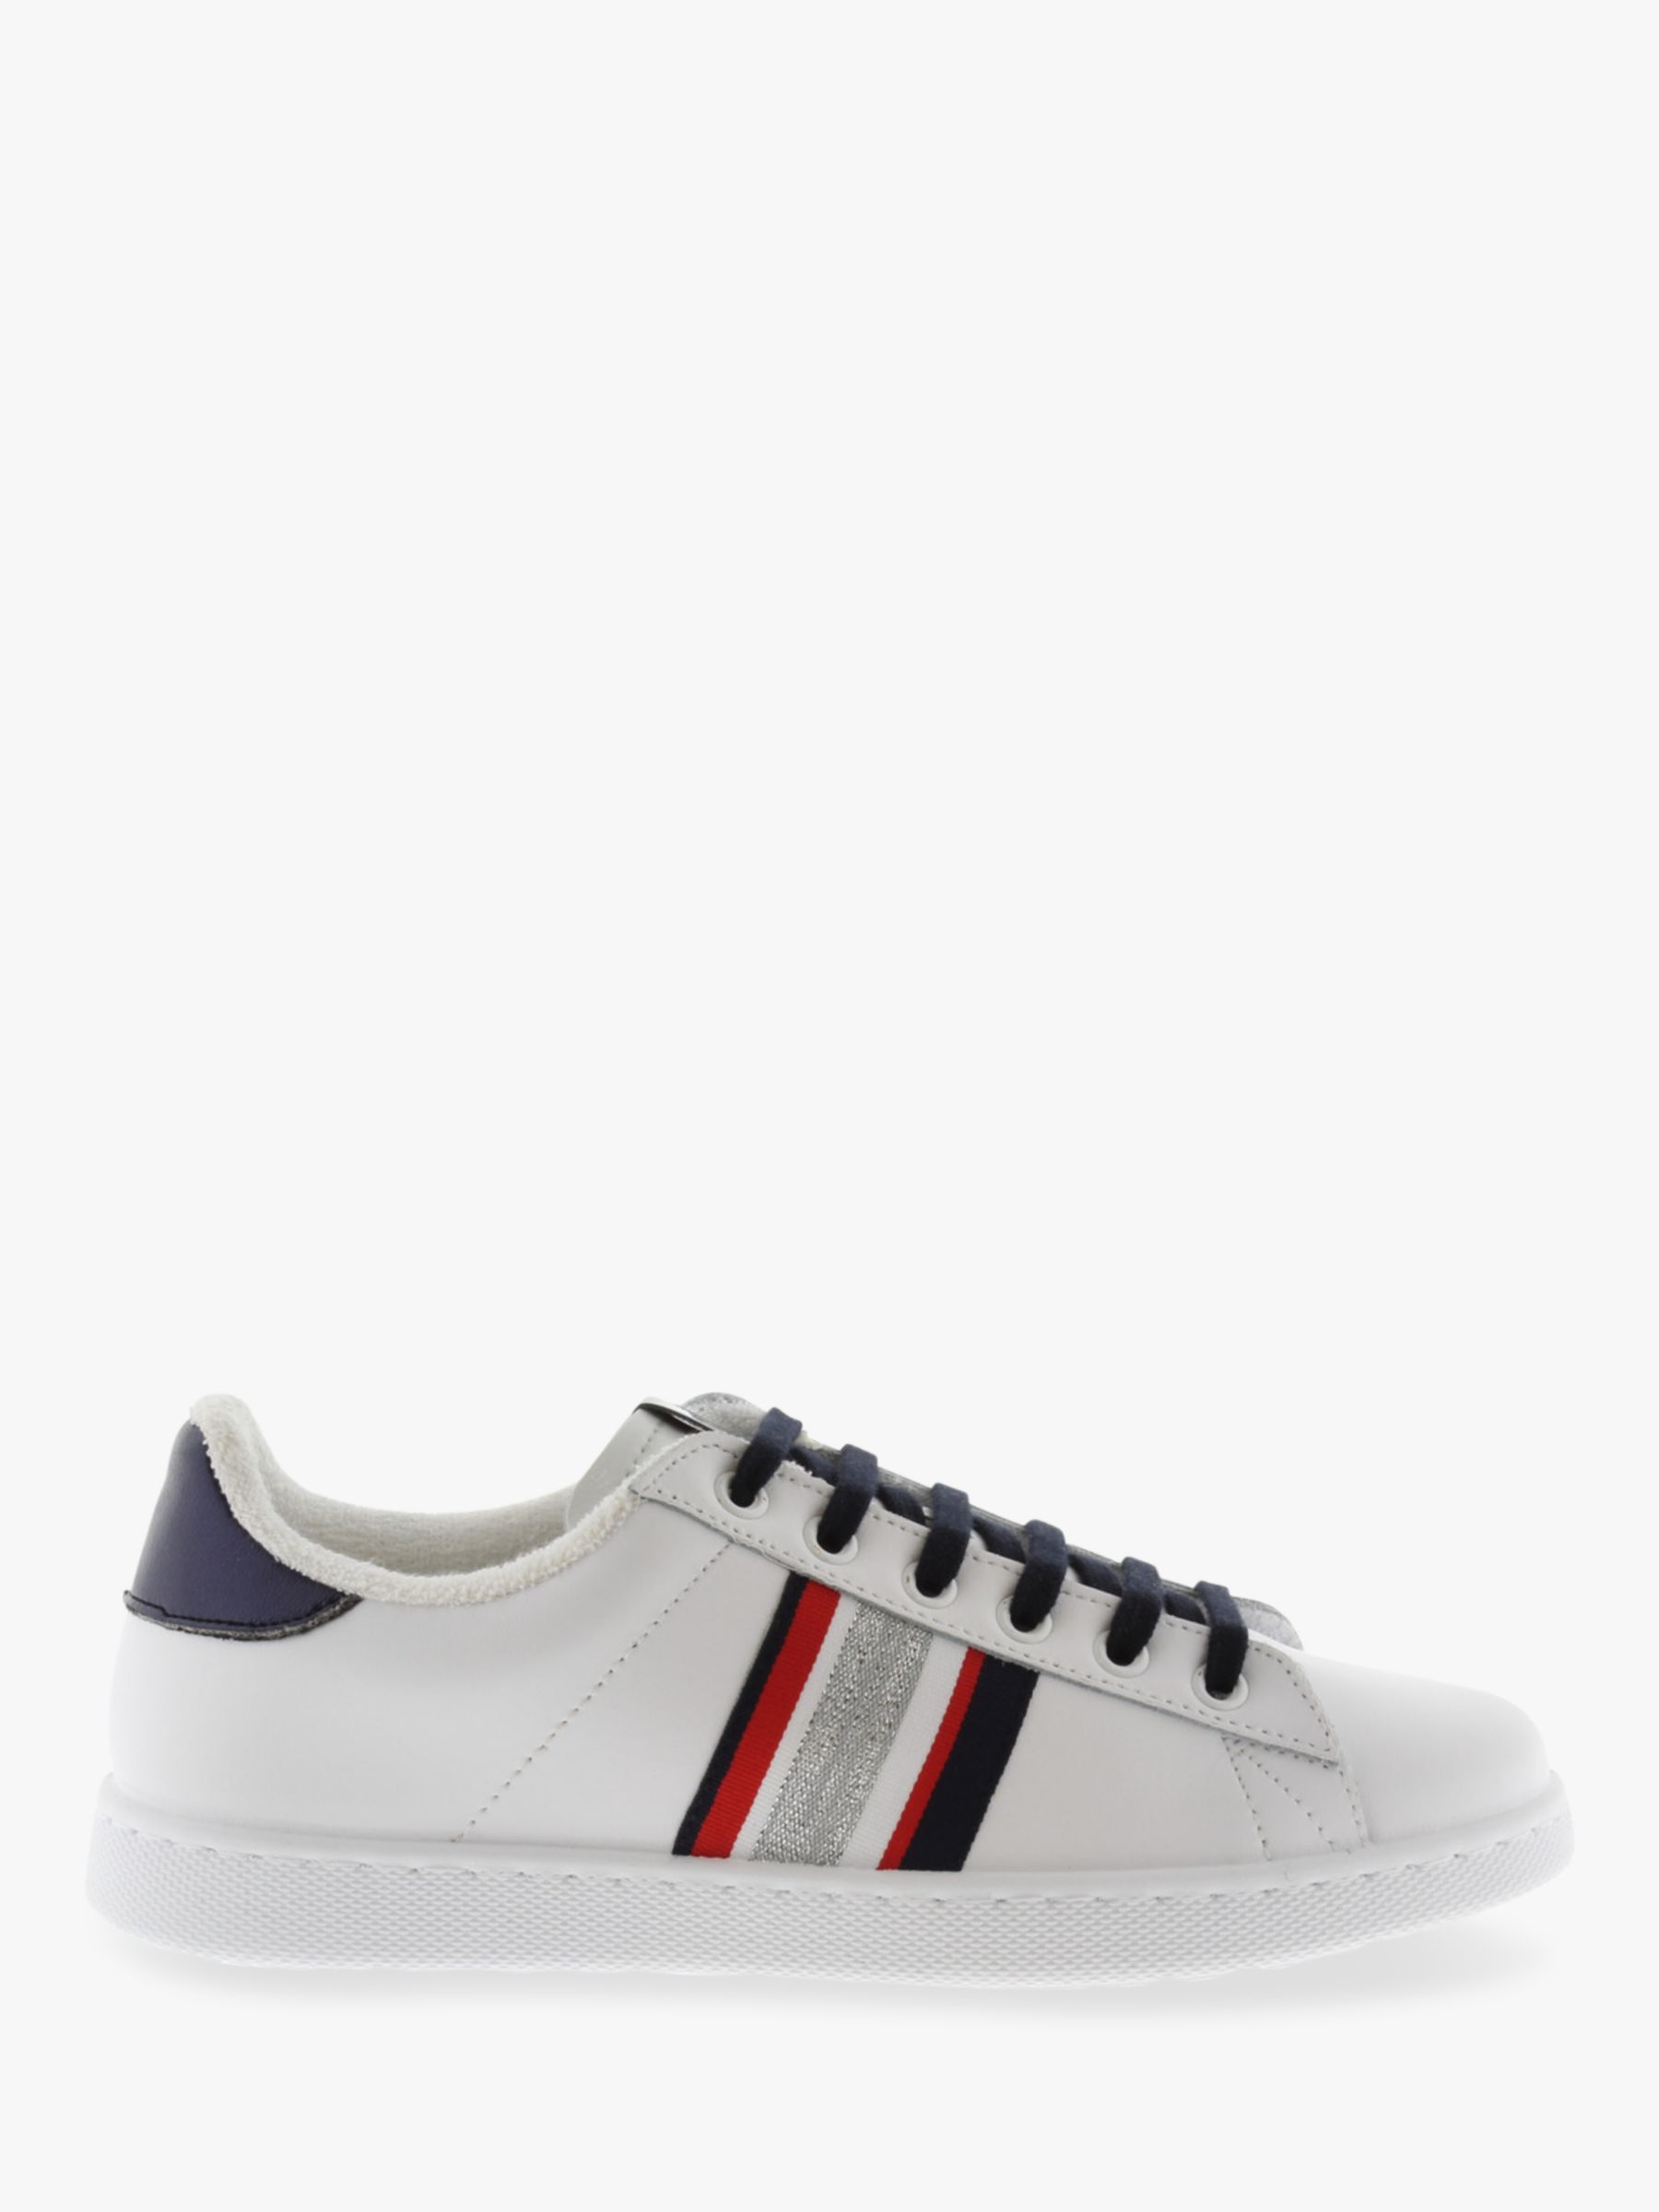 Victoria Shoes Victoria Shoes Tenis Banda Leather Trainers, White/Navy